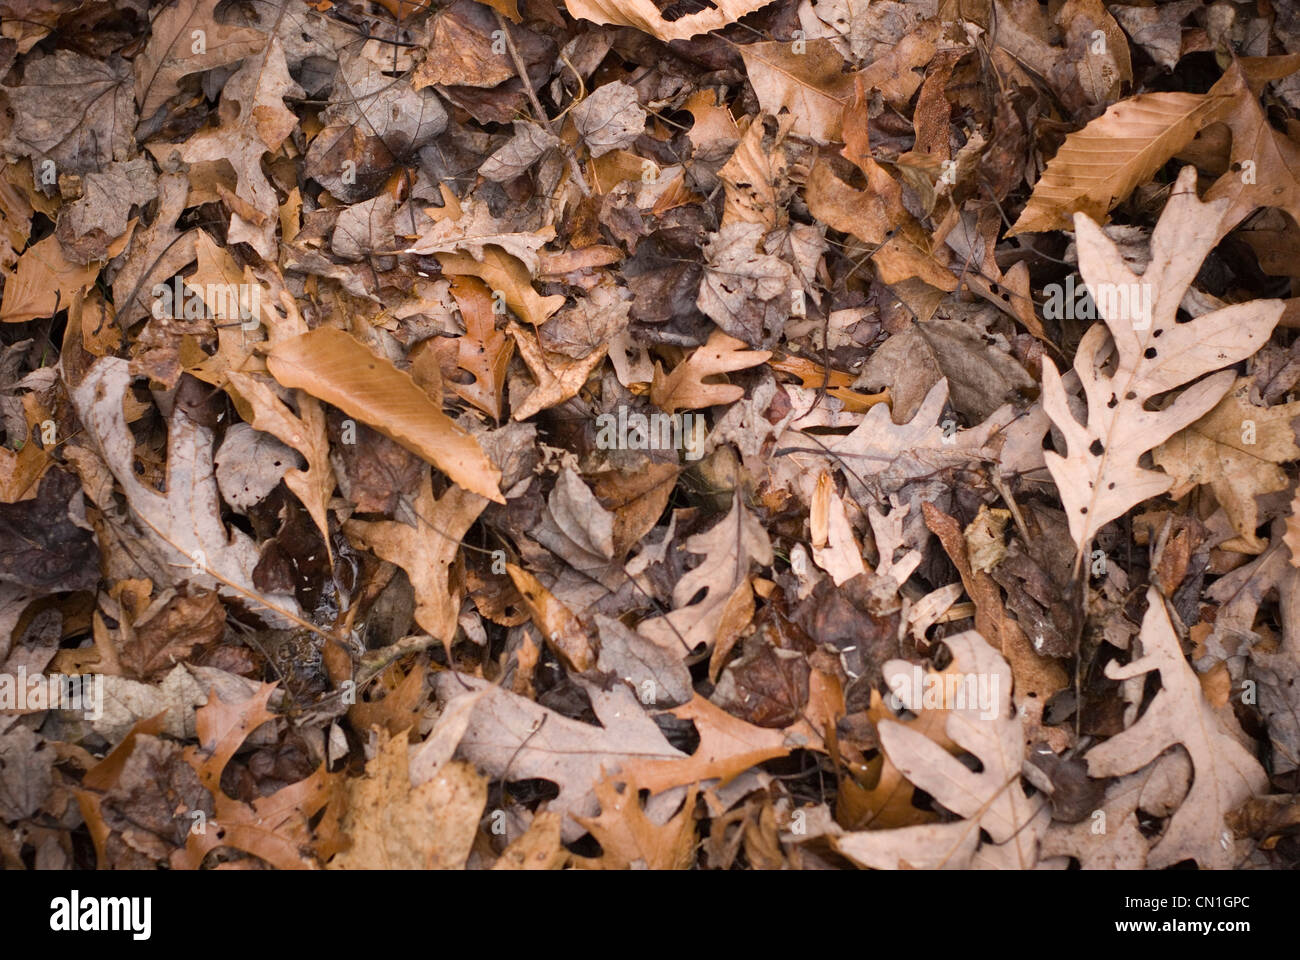 Fallen Autumn Leaves III - Stock Image